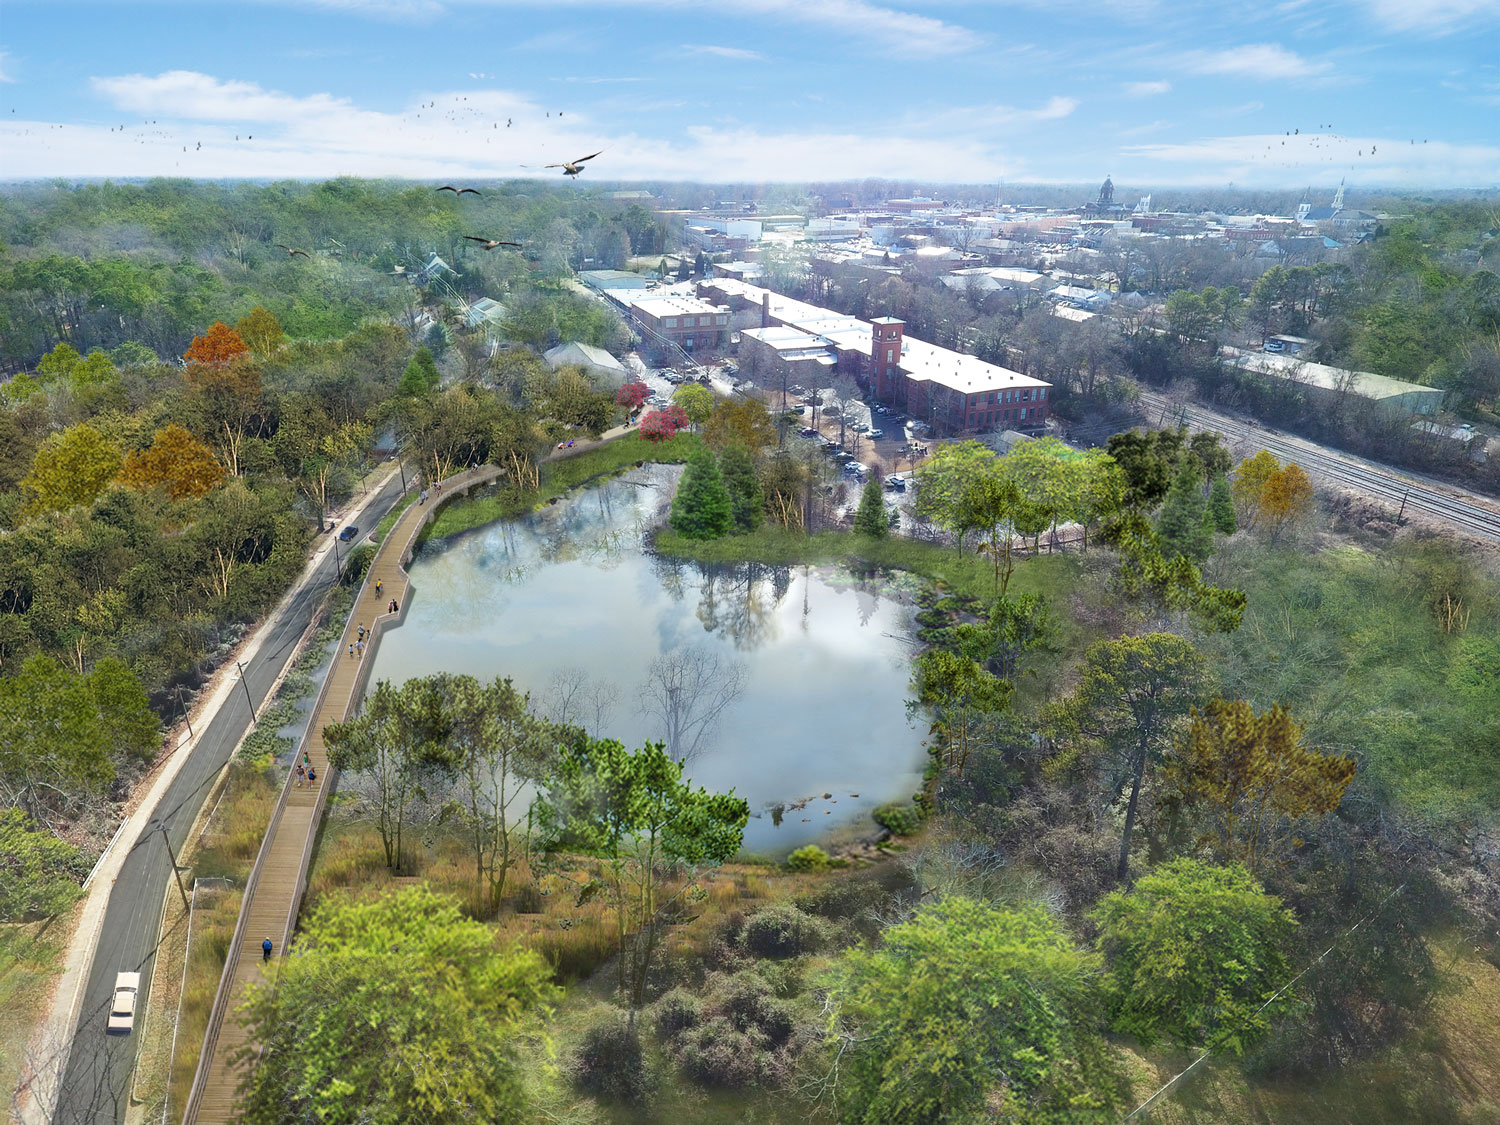 Proposed plan for a boardwalk over the retention pond